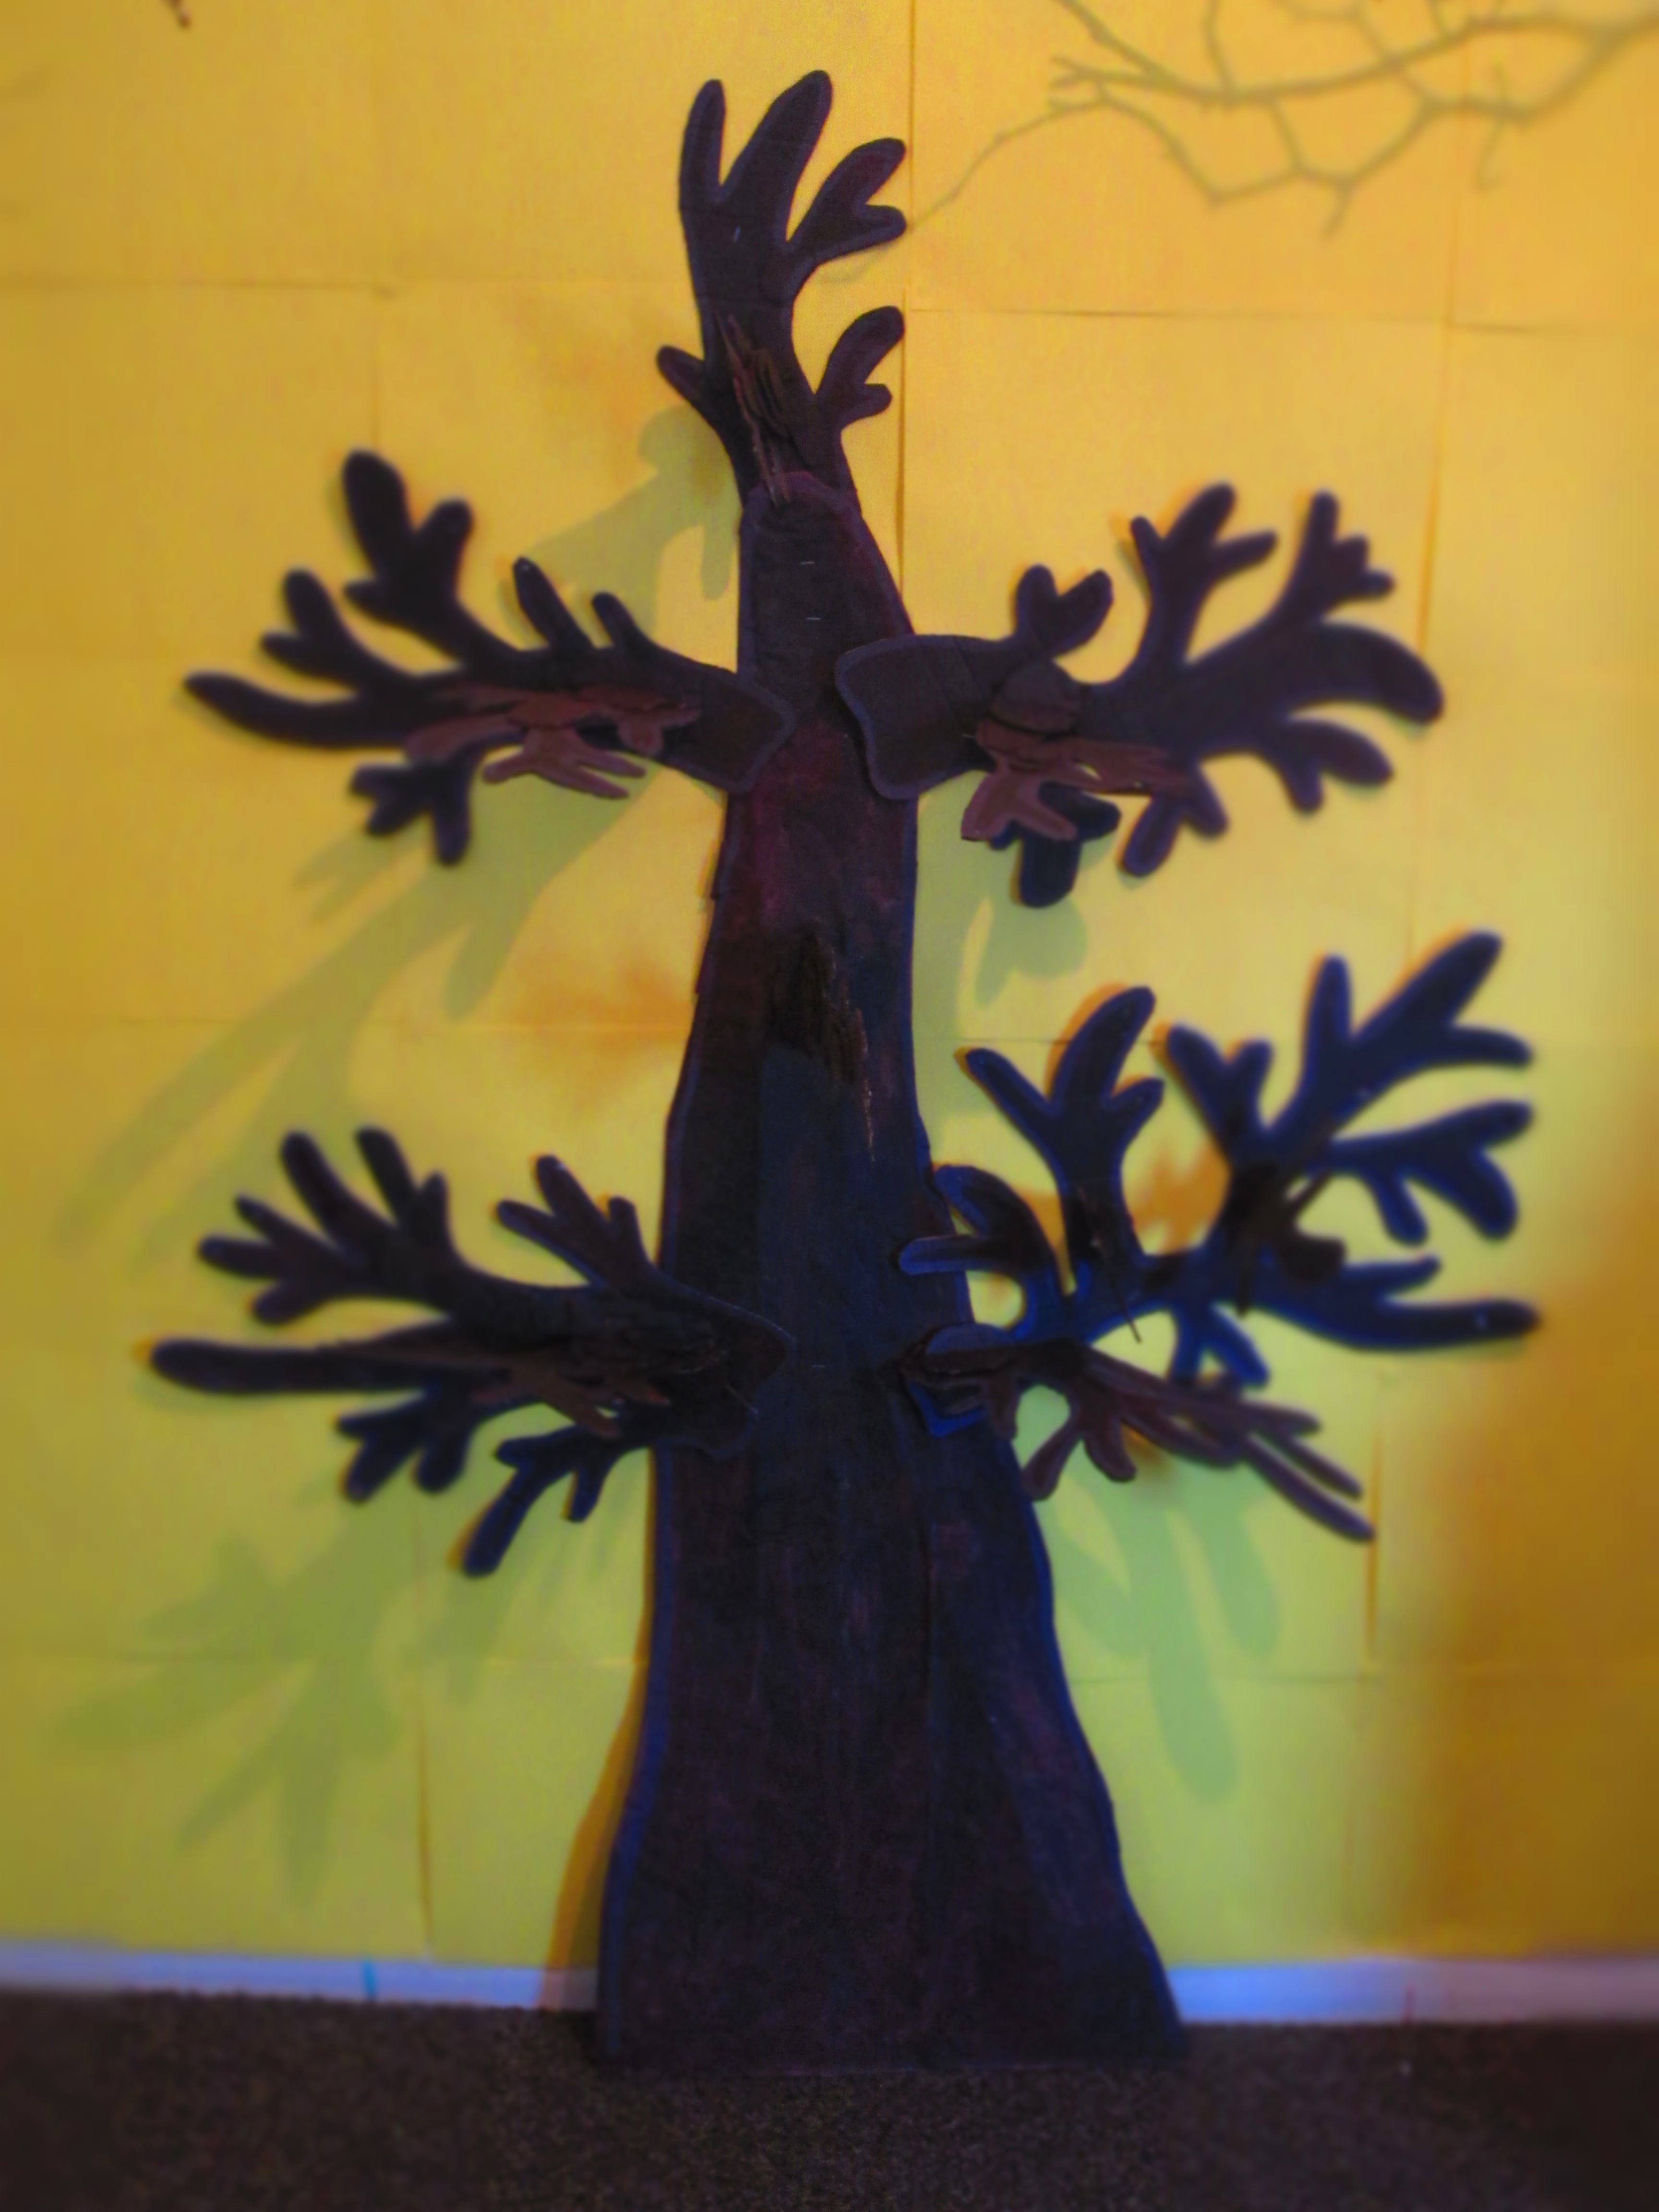 A spooky autumn tree display for Halloween